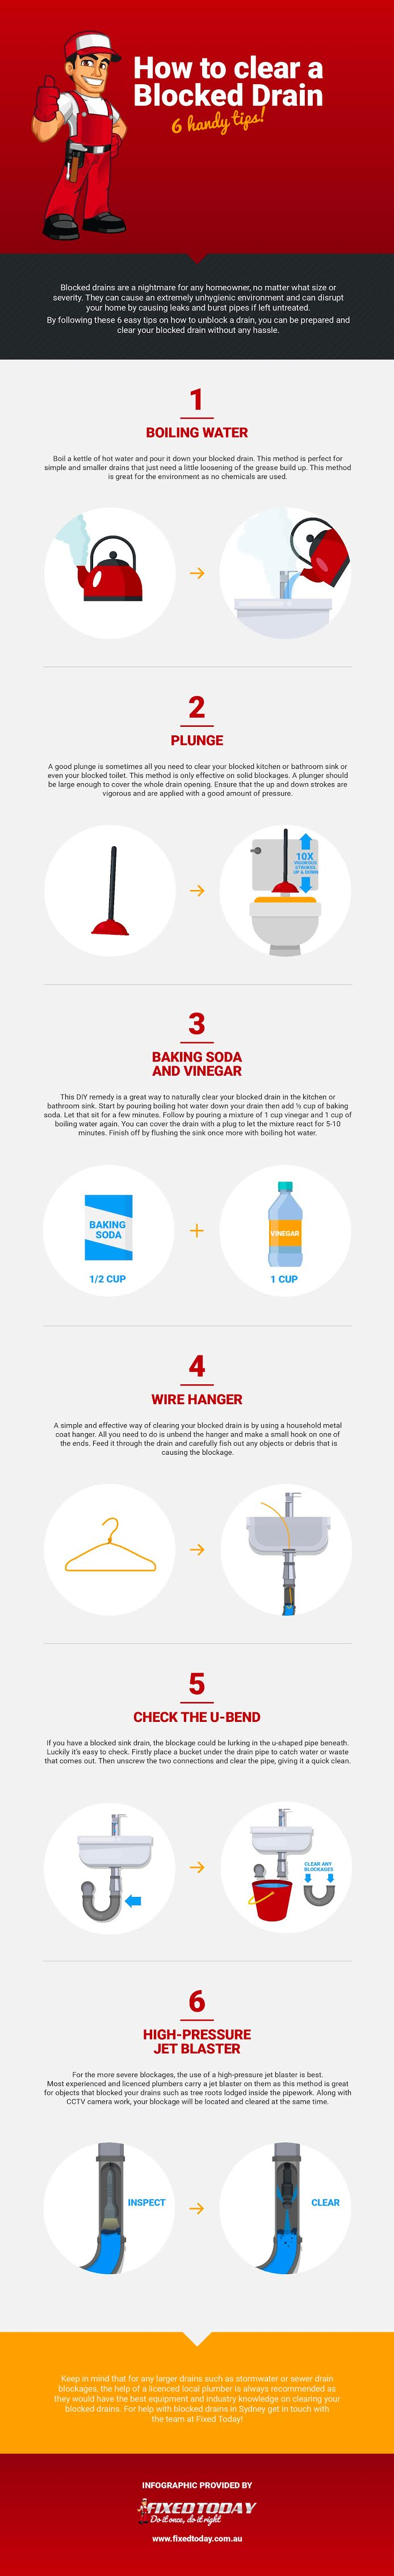 How To Clear a Blocked Drain 6 Handy Tips! #infographic  #Blocked Drain #infographics #Plumbing Problems